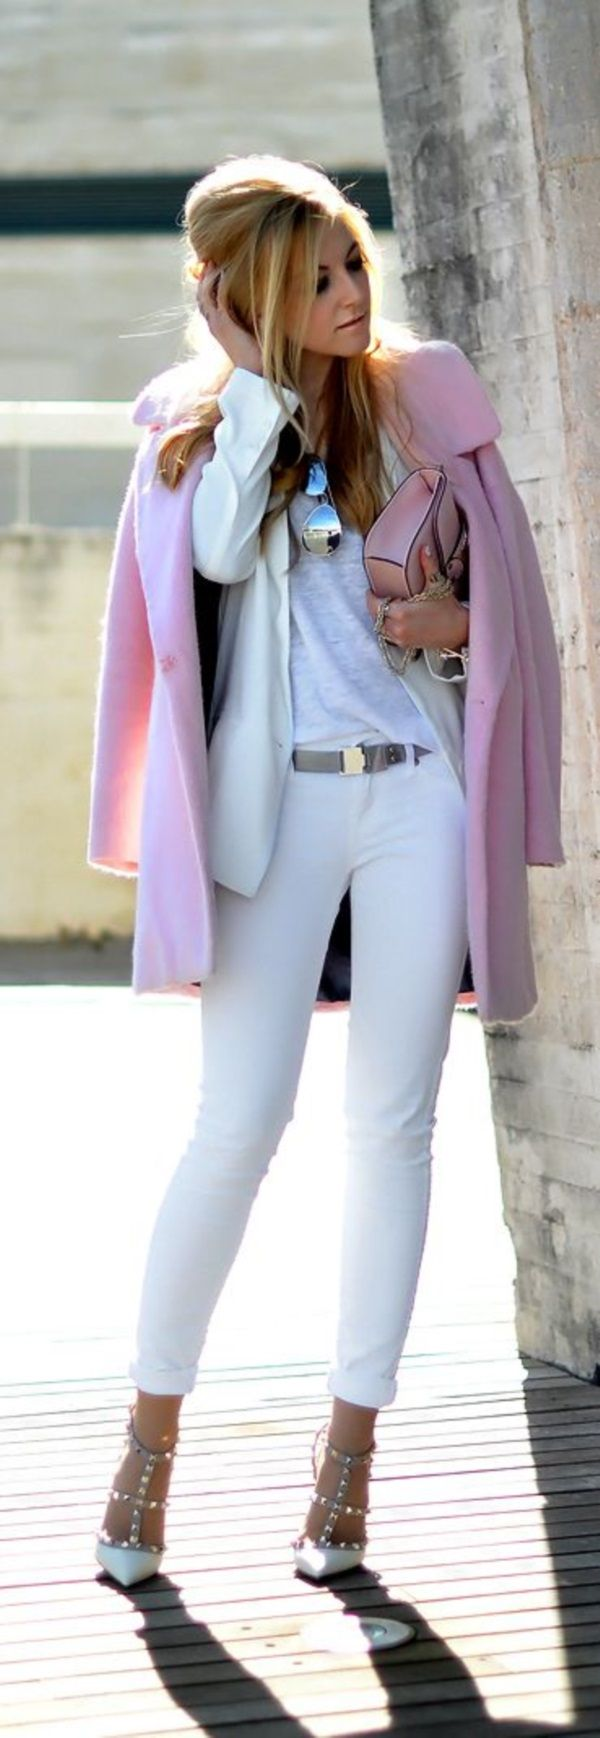 40 Perfect Outfit Ideas With White Jeans | http://fashion.ekstrax.com/2015/04/perfect-outfit-ideas-with-white-jeans.html